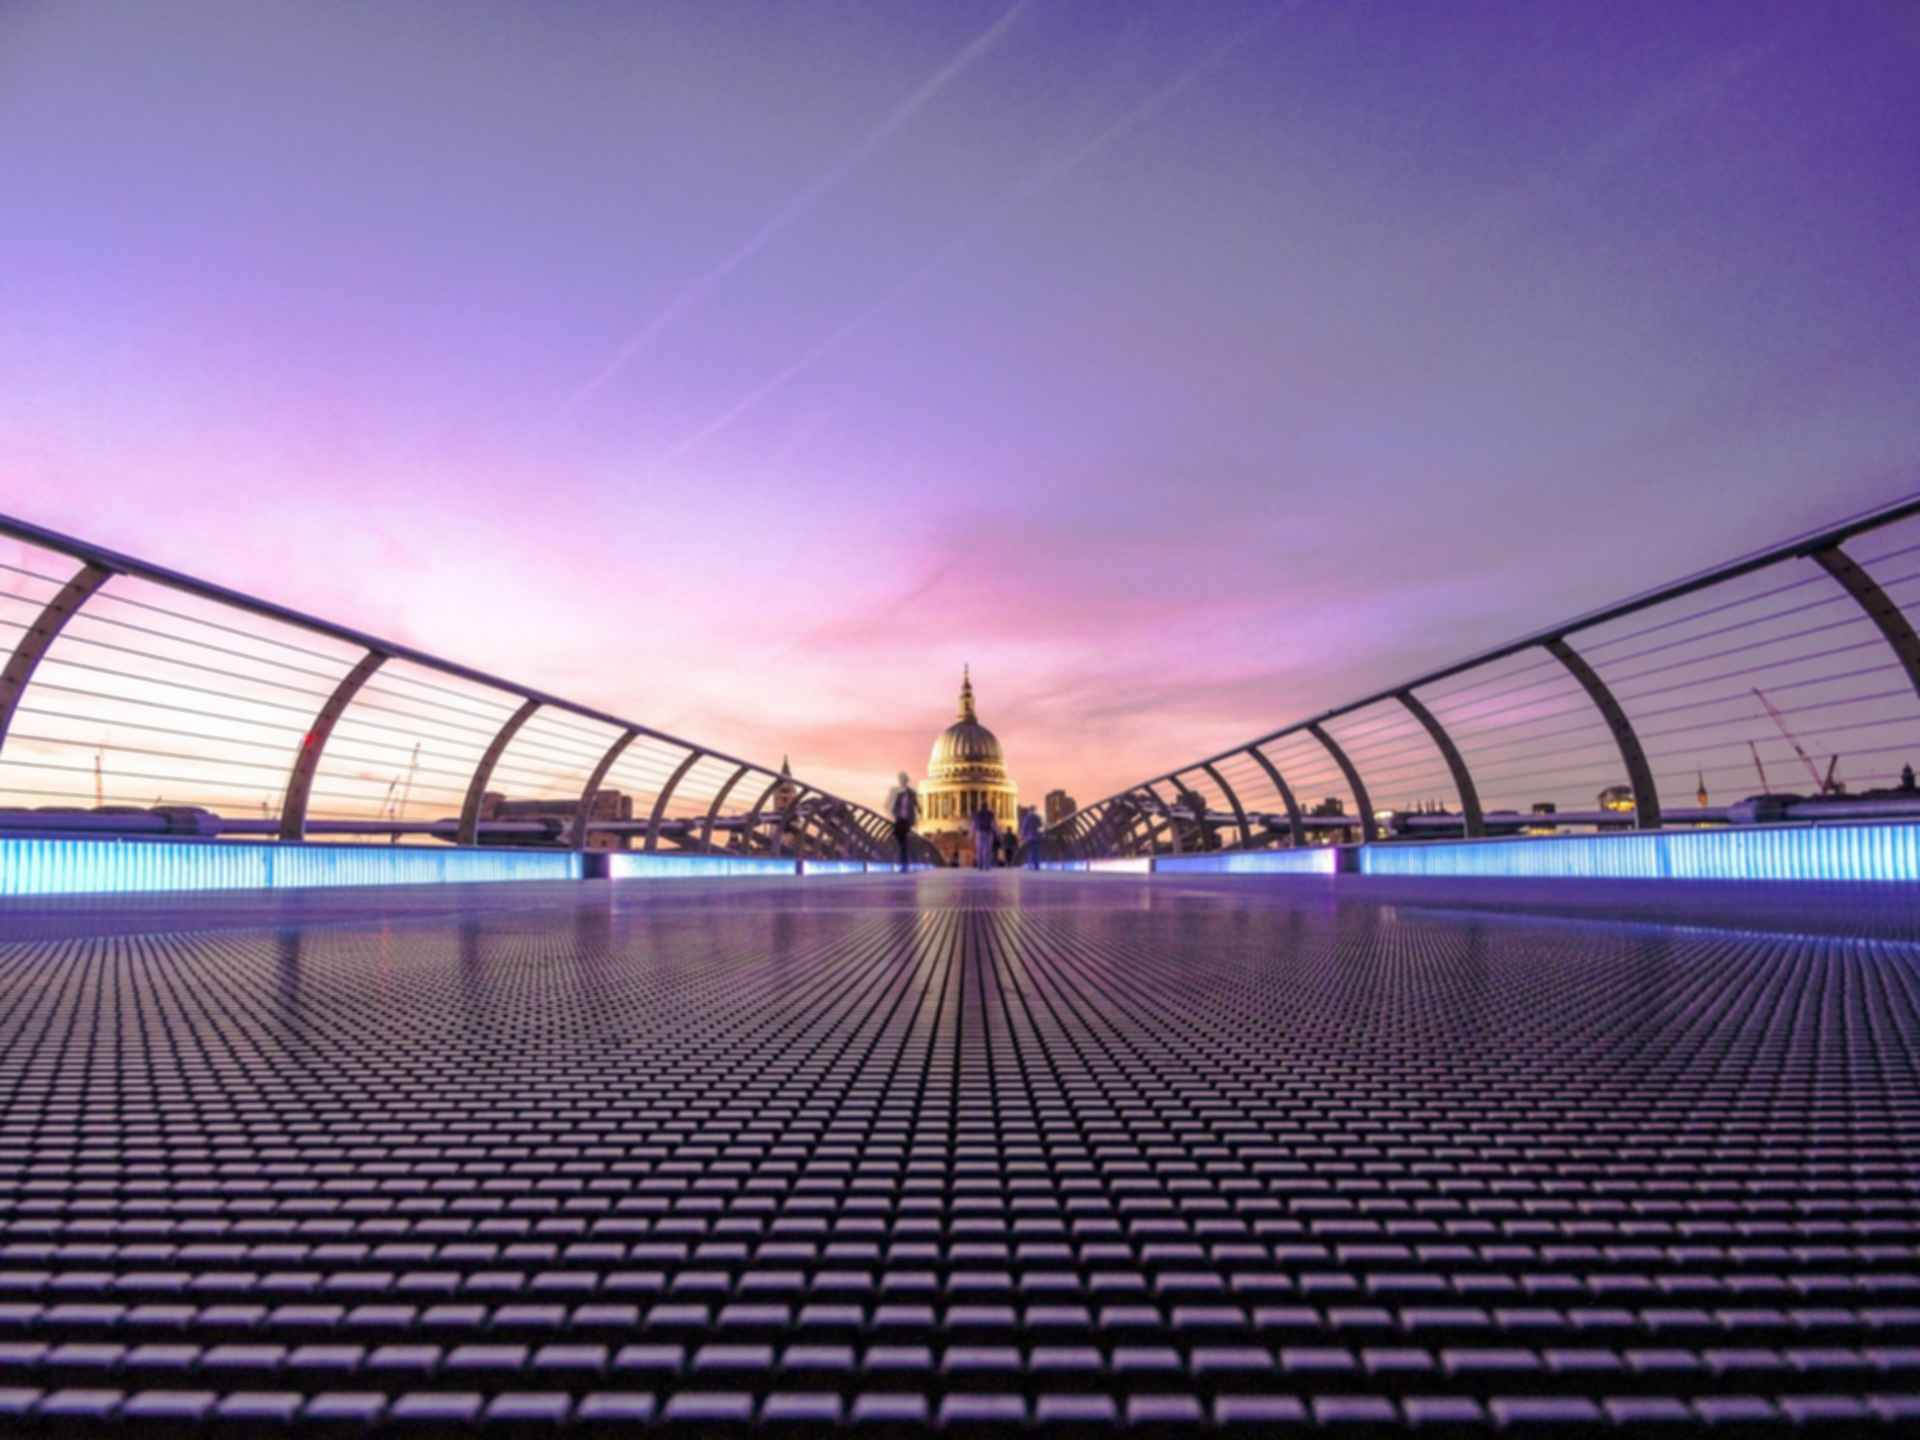 London Millennium Footbridge - Looking to St Paul's Cathedral